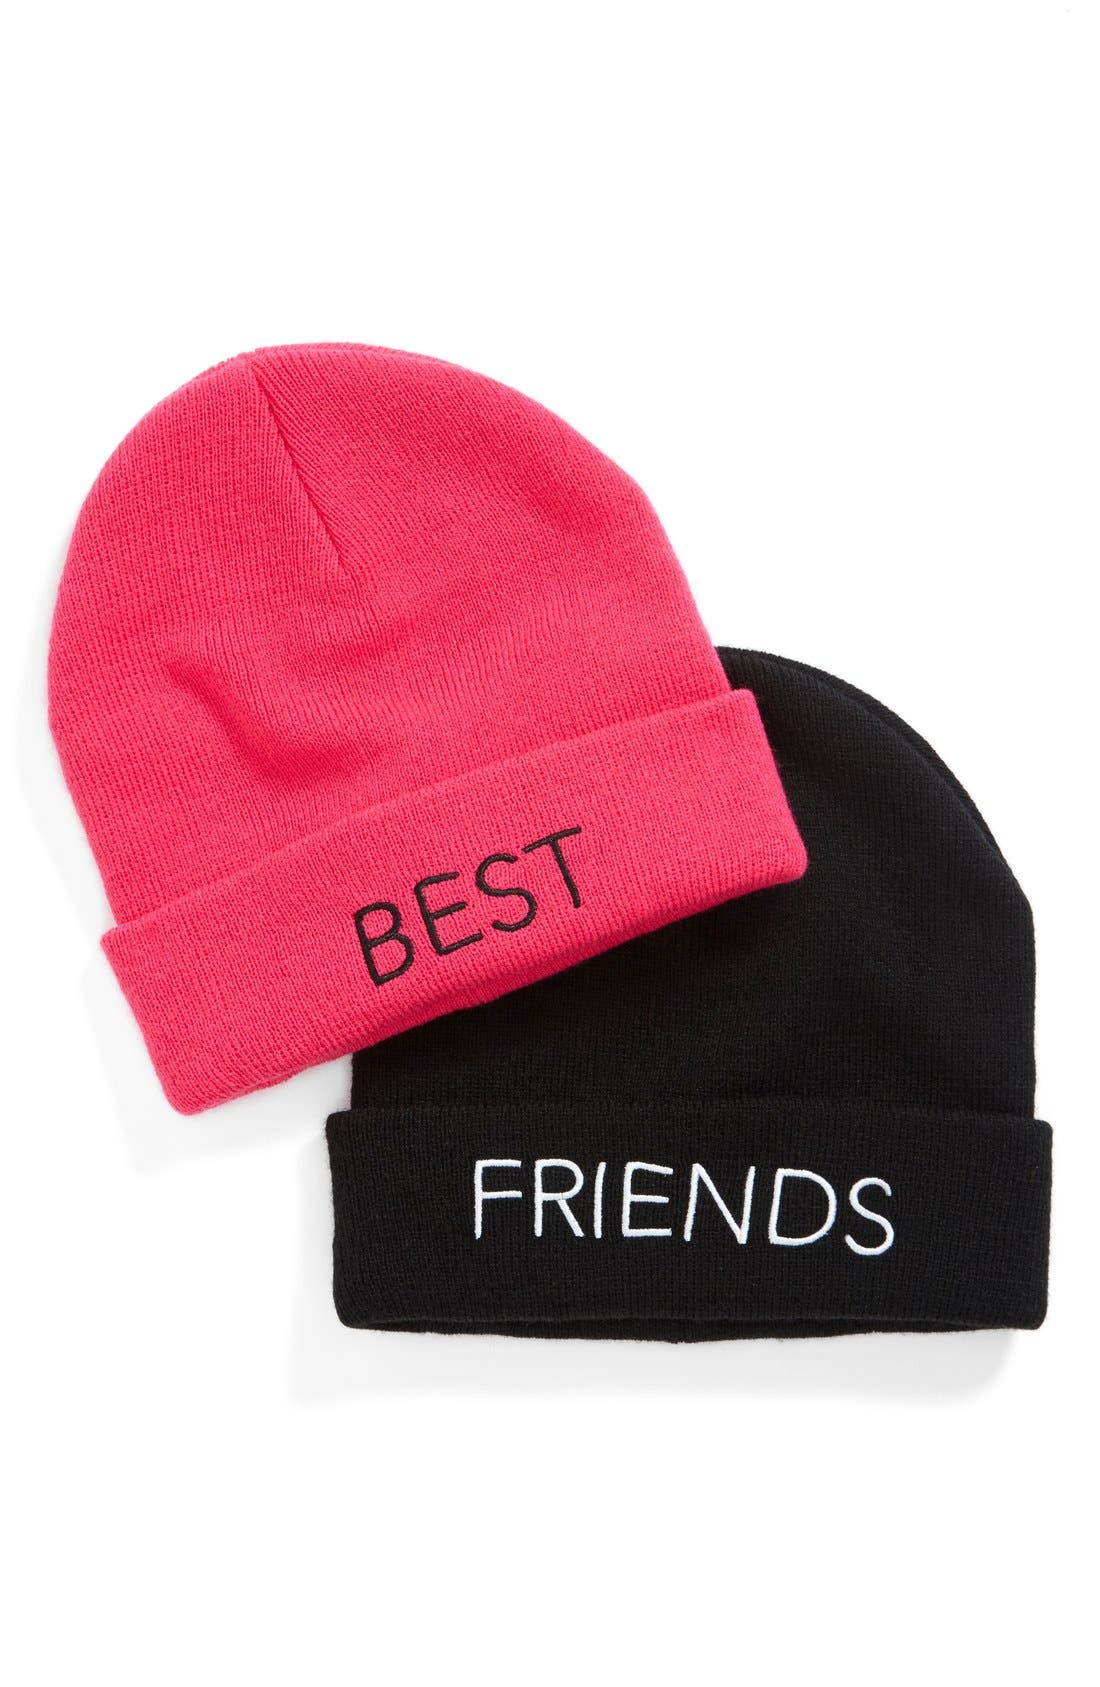 Alternate Image 1 Selected - BP. 'Bestie' Beanie Set (Set of 2) (Juniors)